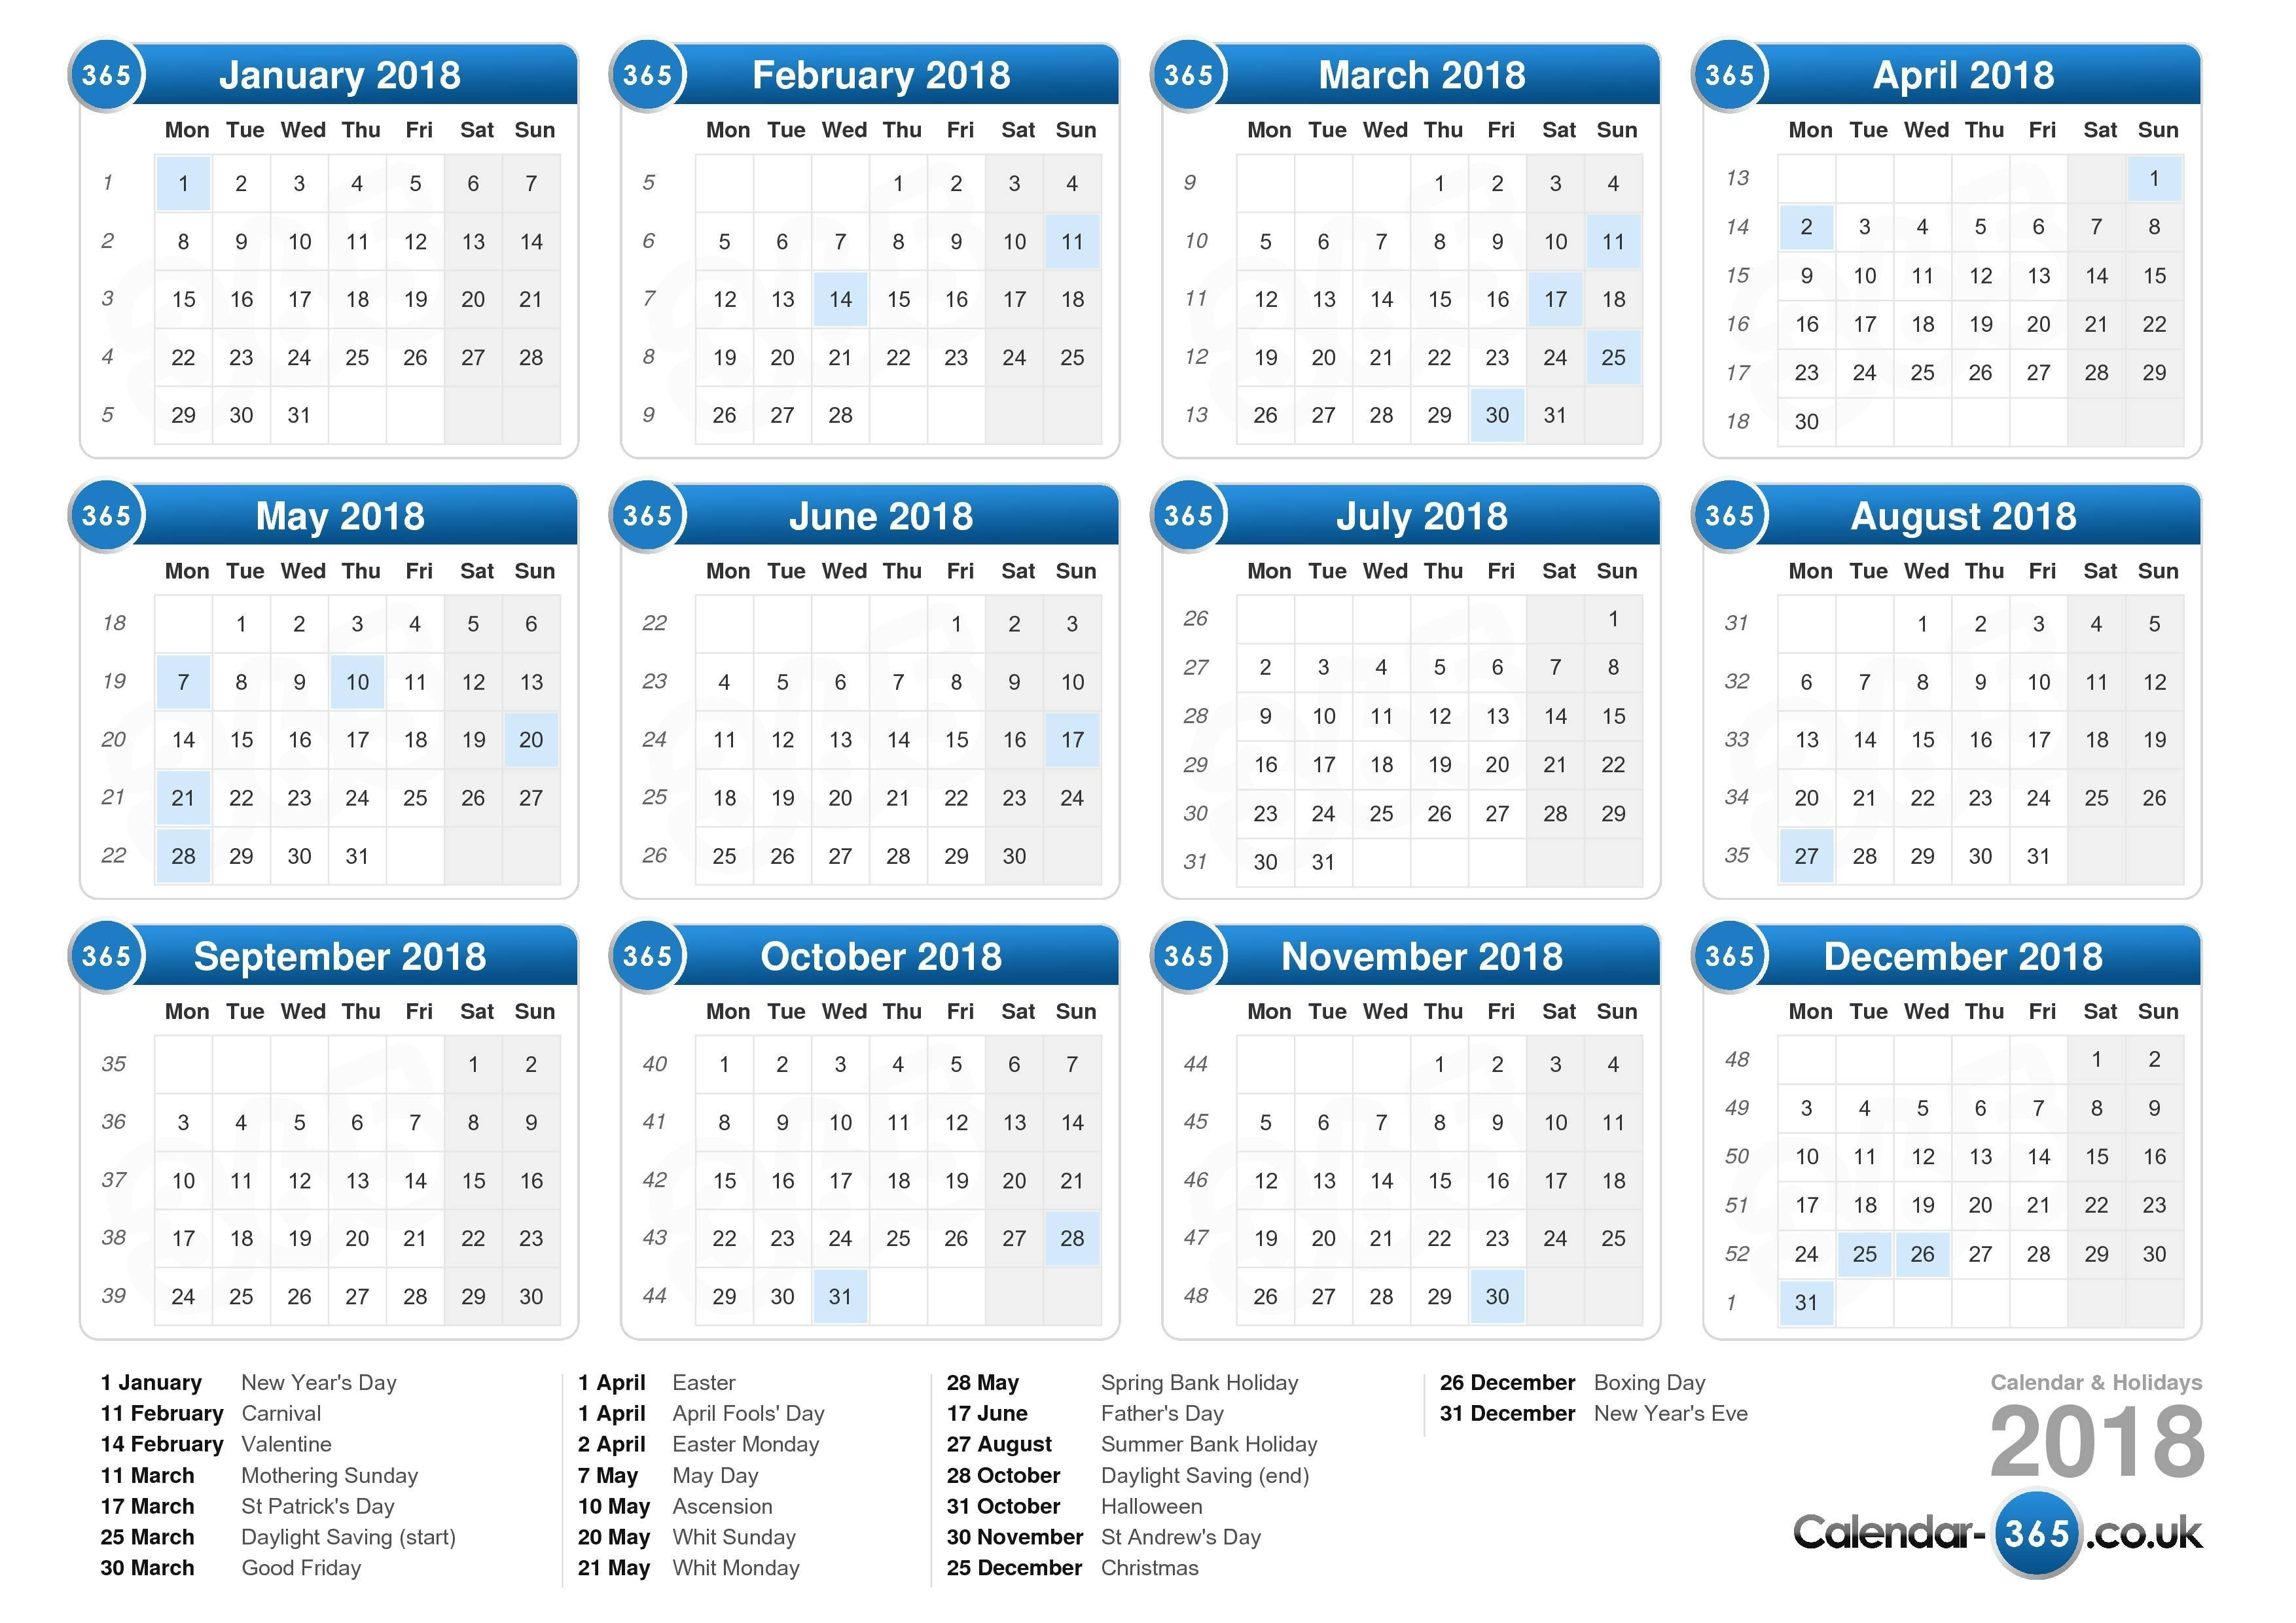 Calendar 2018-Calendar Indicating The Holidays